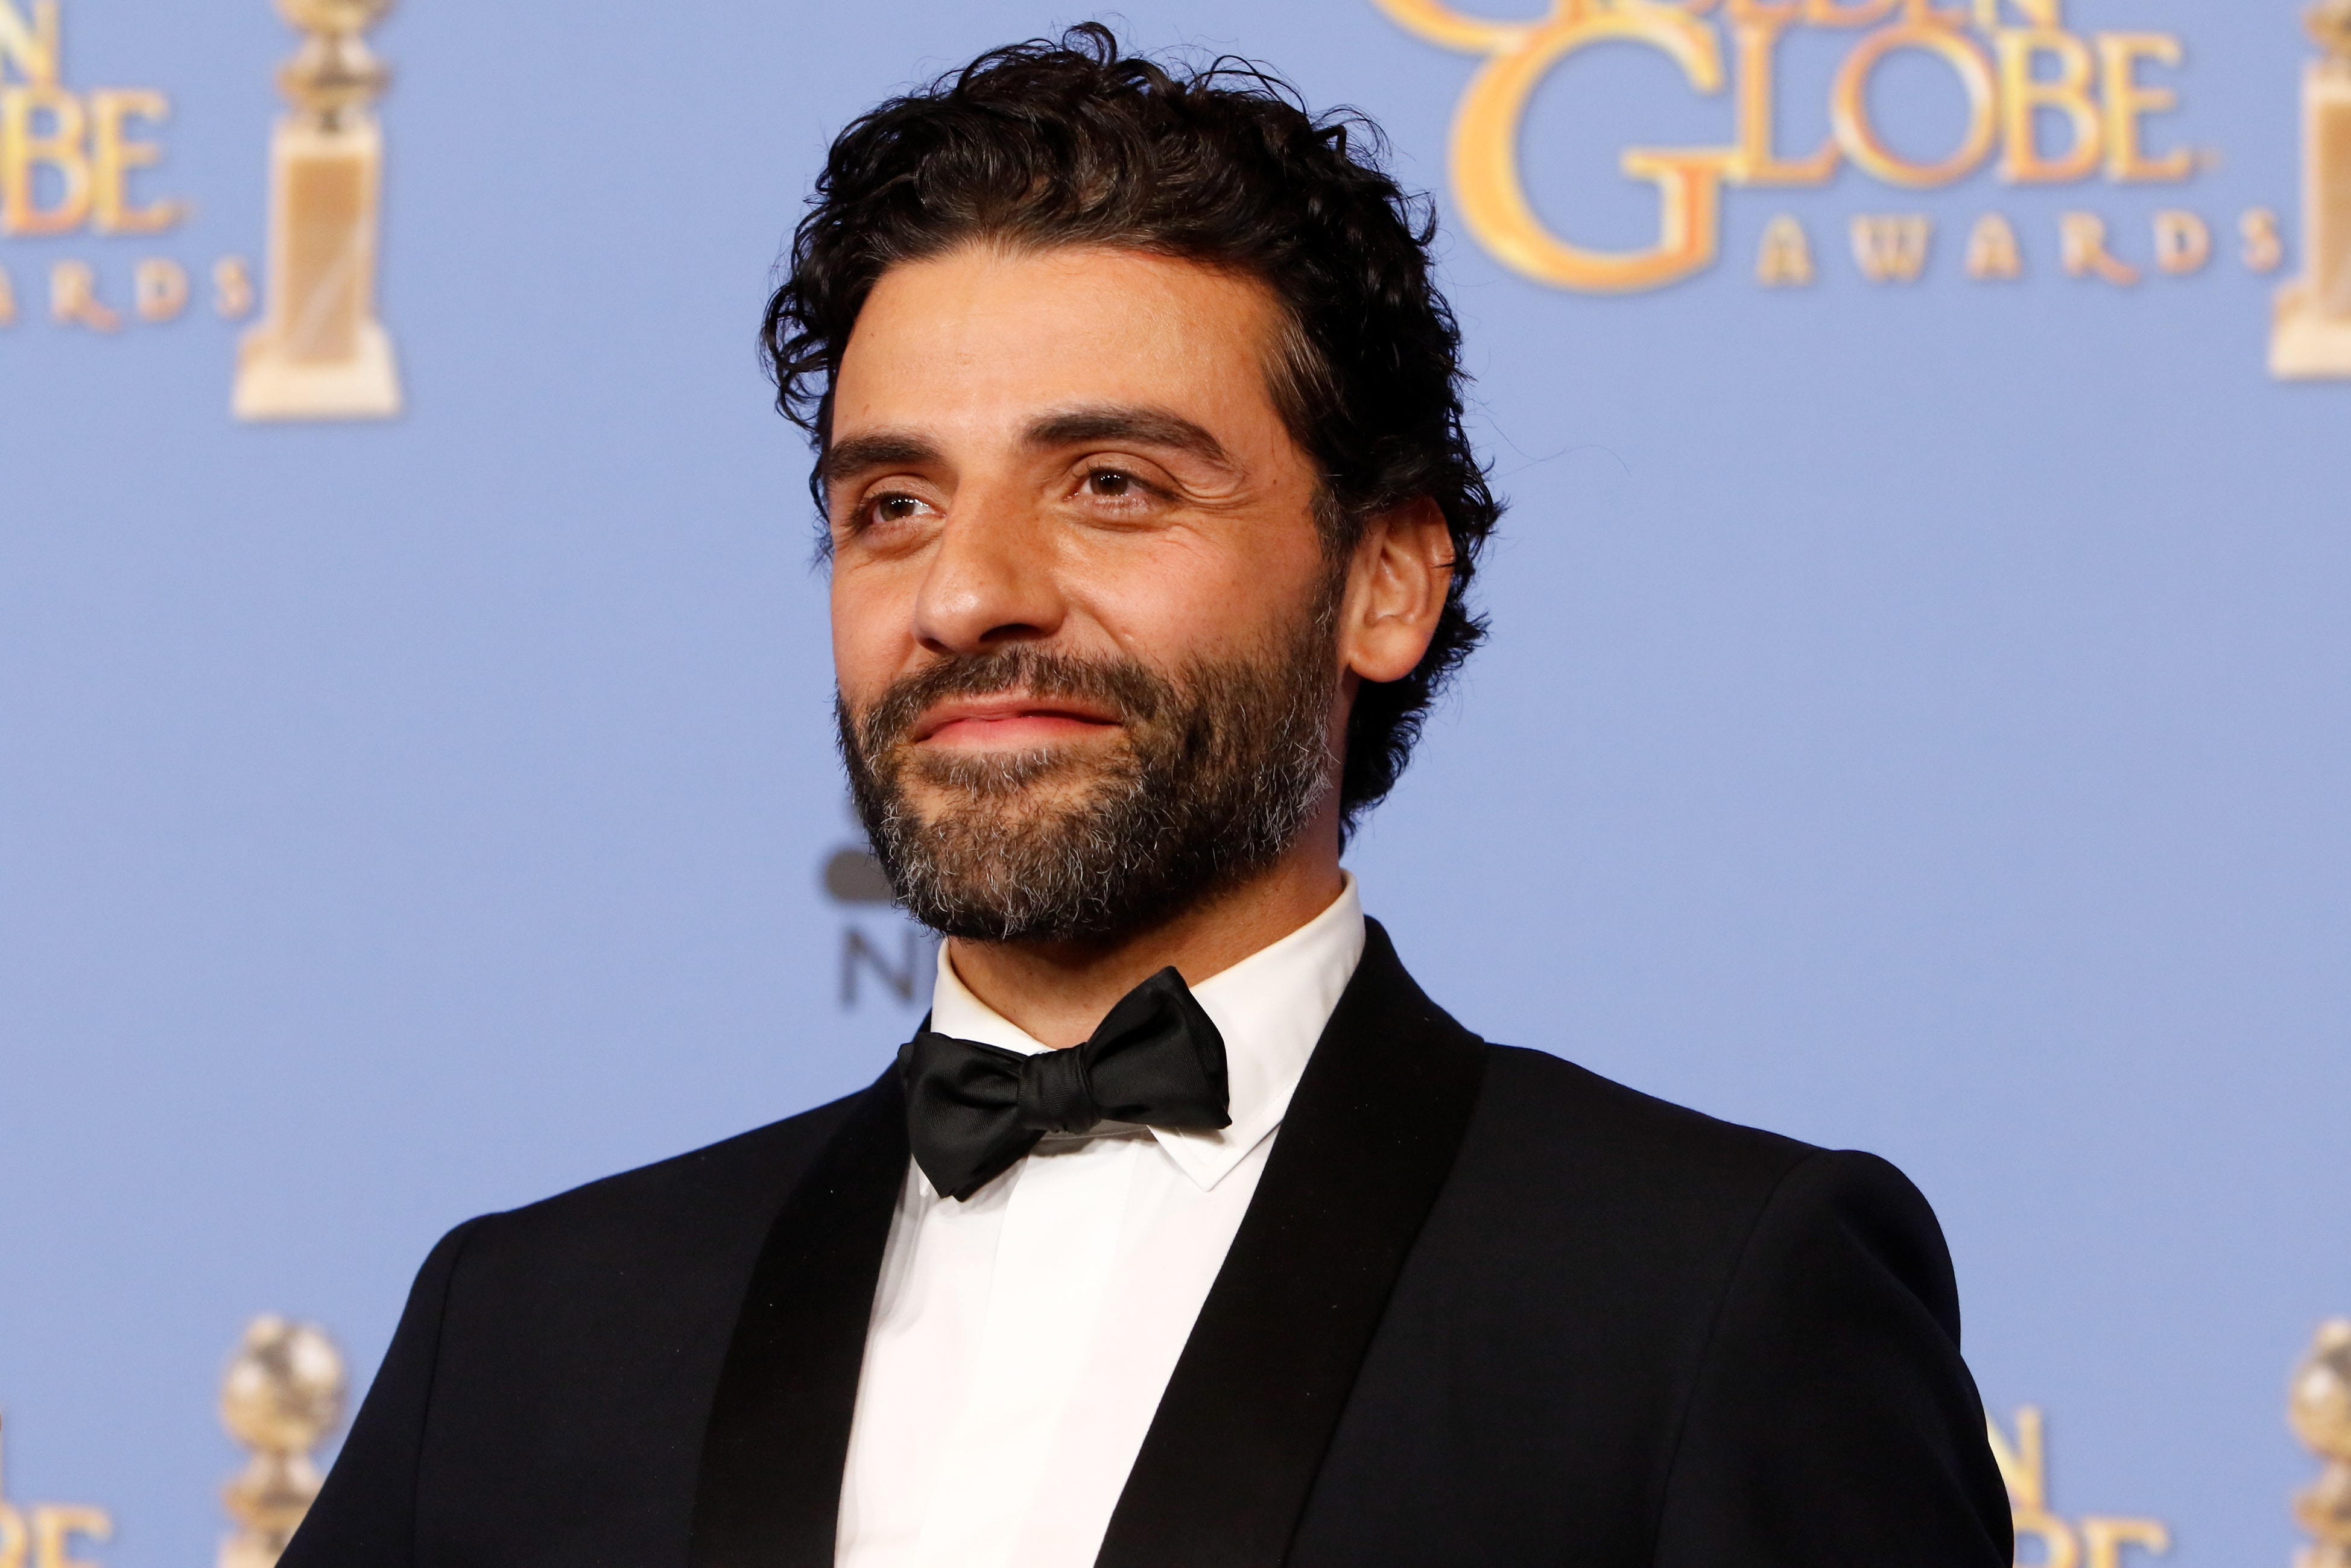 If you too can't have enough of this latino sexbomb, here are 15 things that you likely are unware to further fuel your obsession with hunky actor and birthday boy Oscar Isaac! (Photo: WENN)